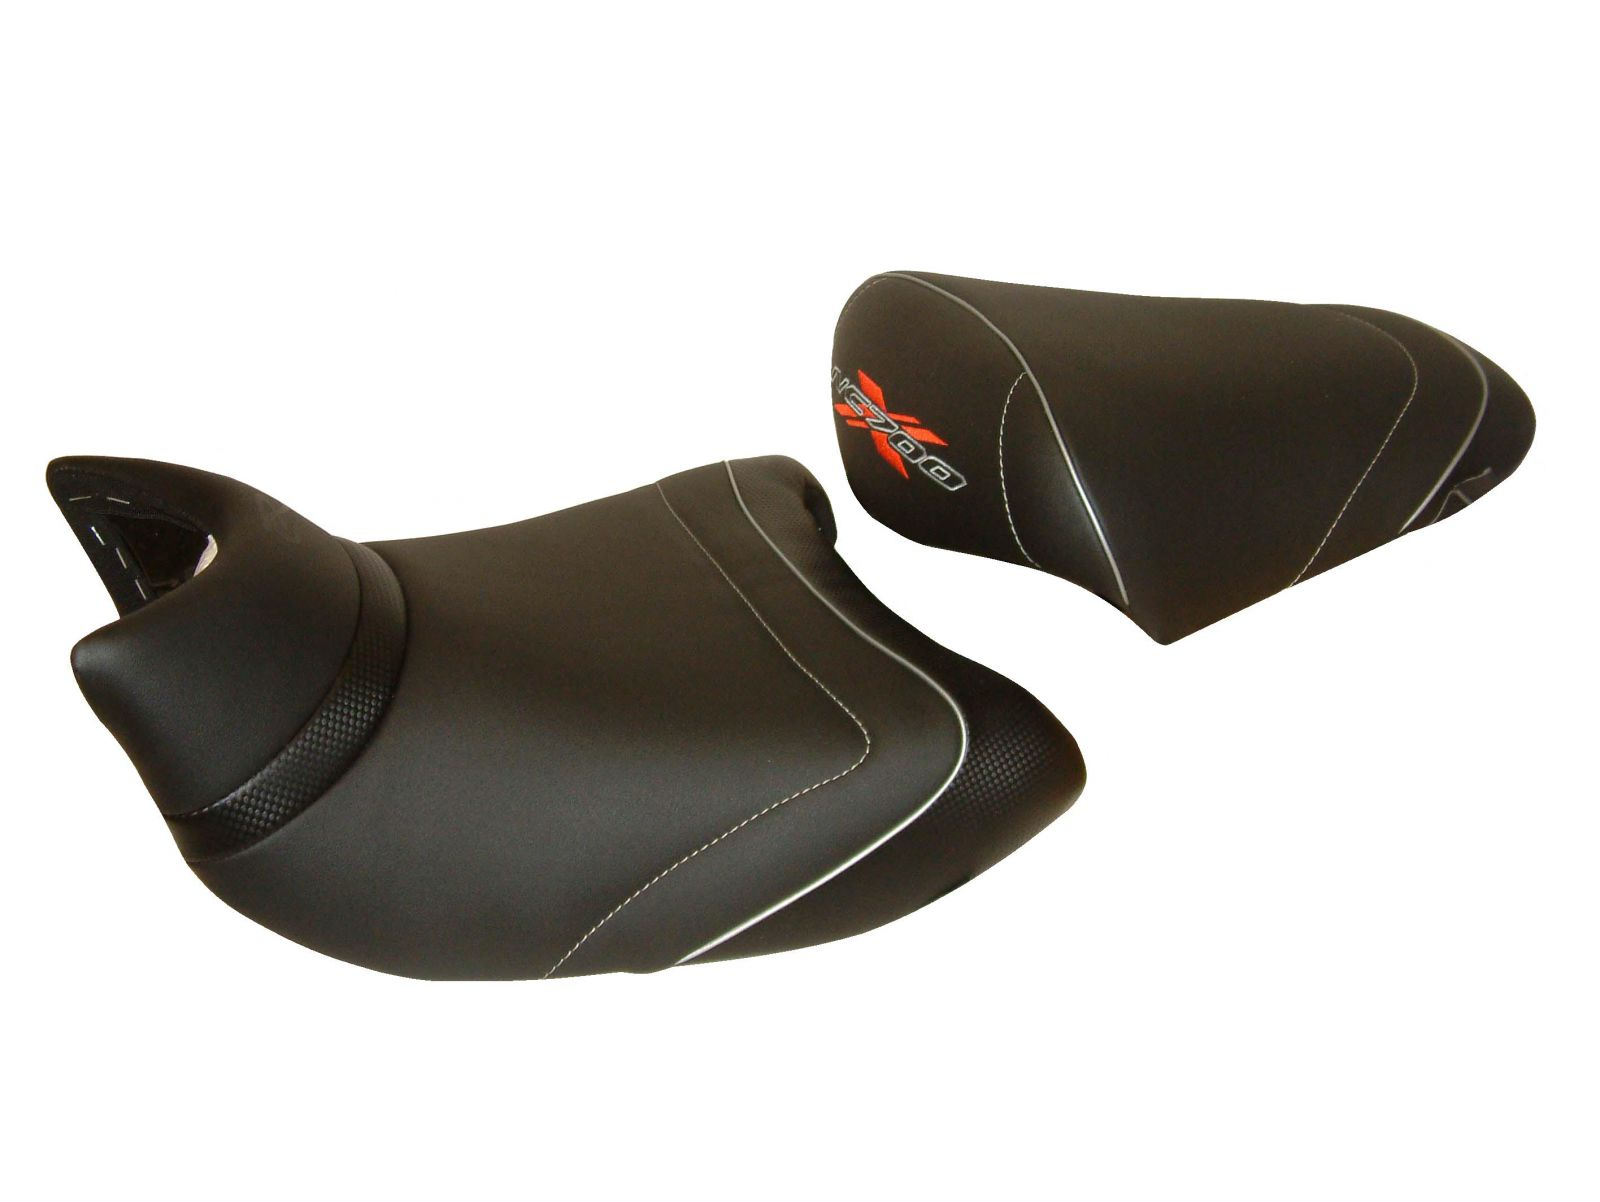 selle grand confort sgc3537 honda nc 700 x 2012 tarifs pour france. Black Bedroom Furniture Sets. Home Design Ideas